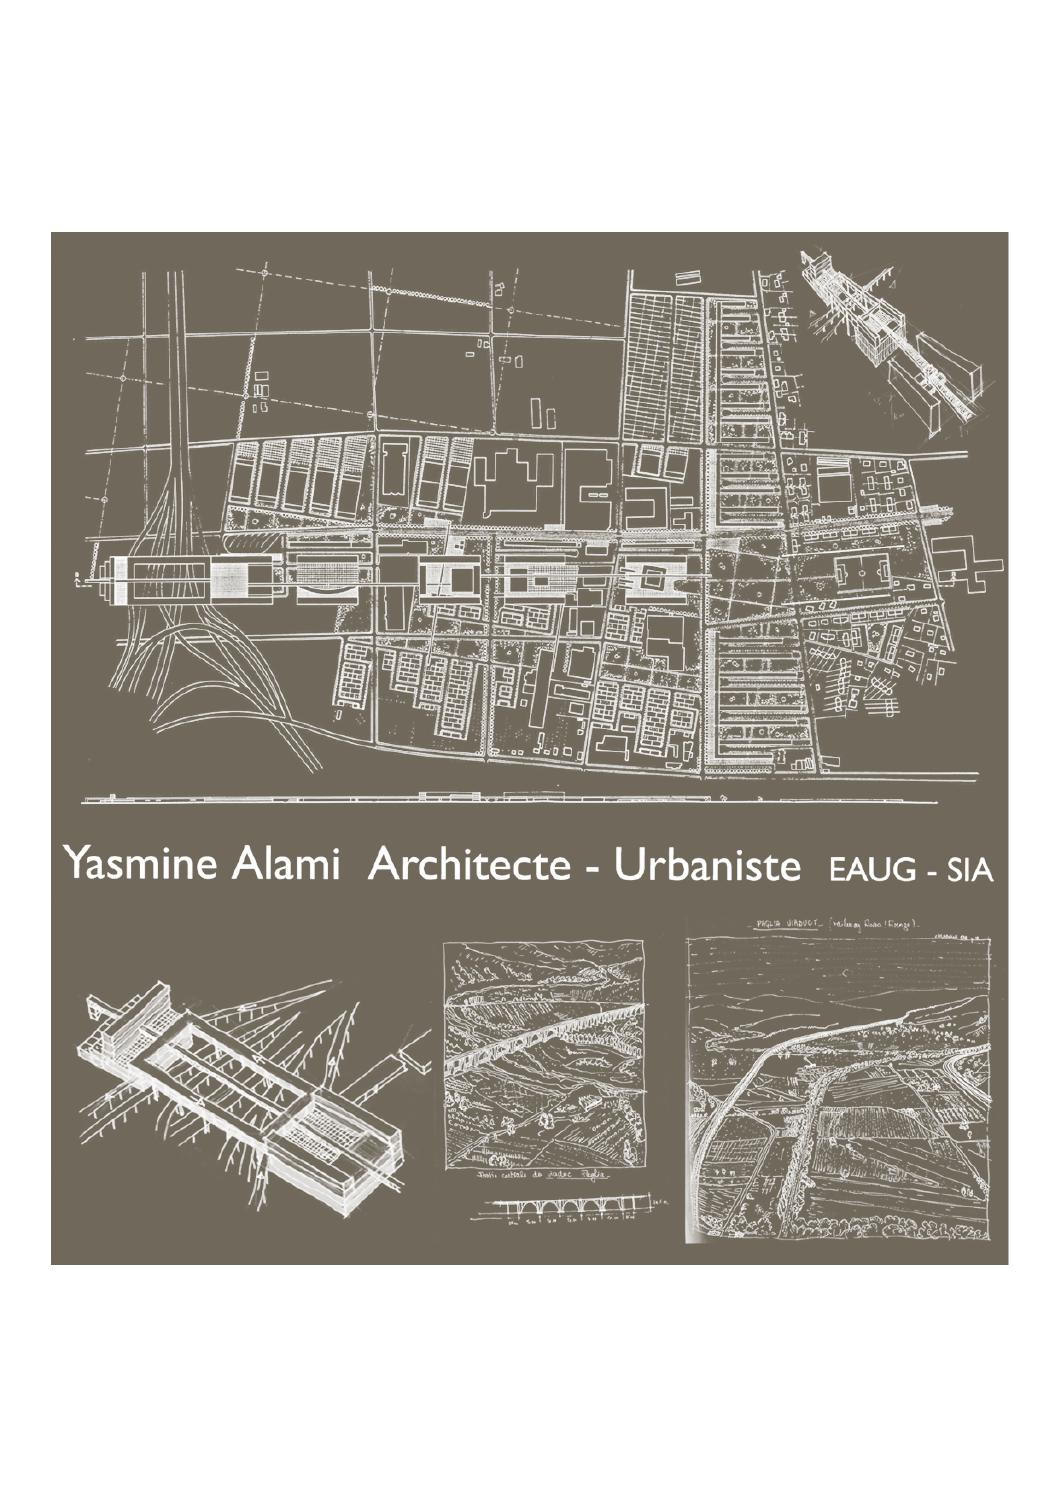 cv yasmine alami architecte by archinomad